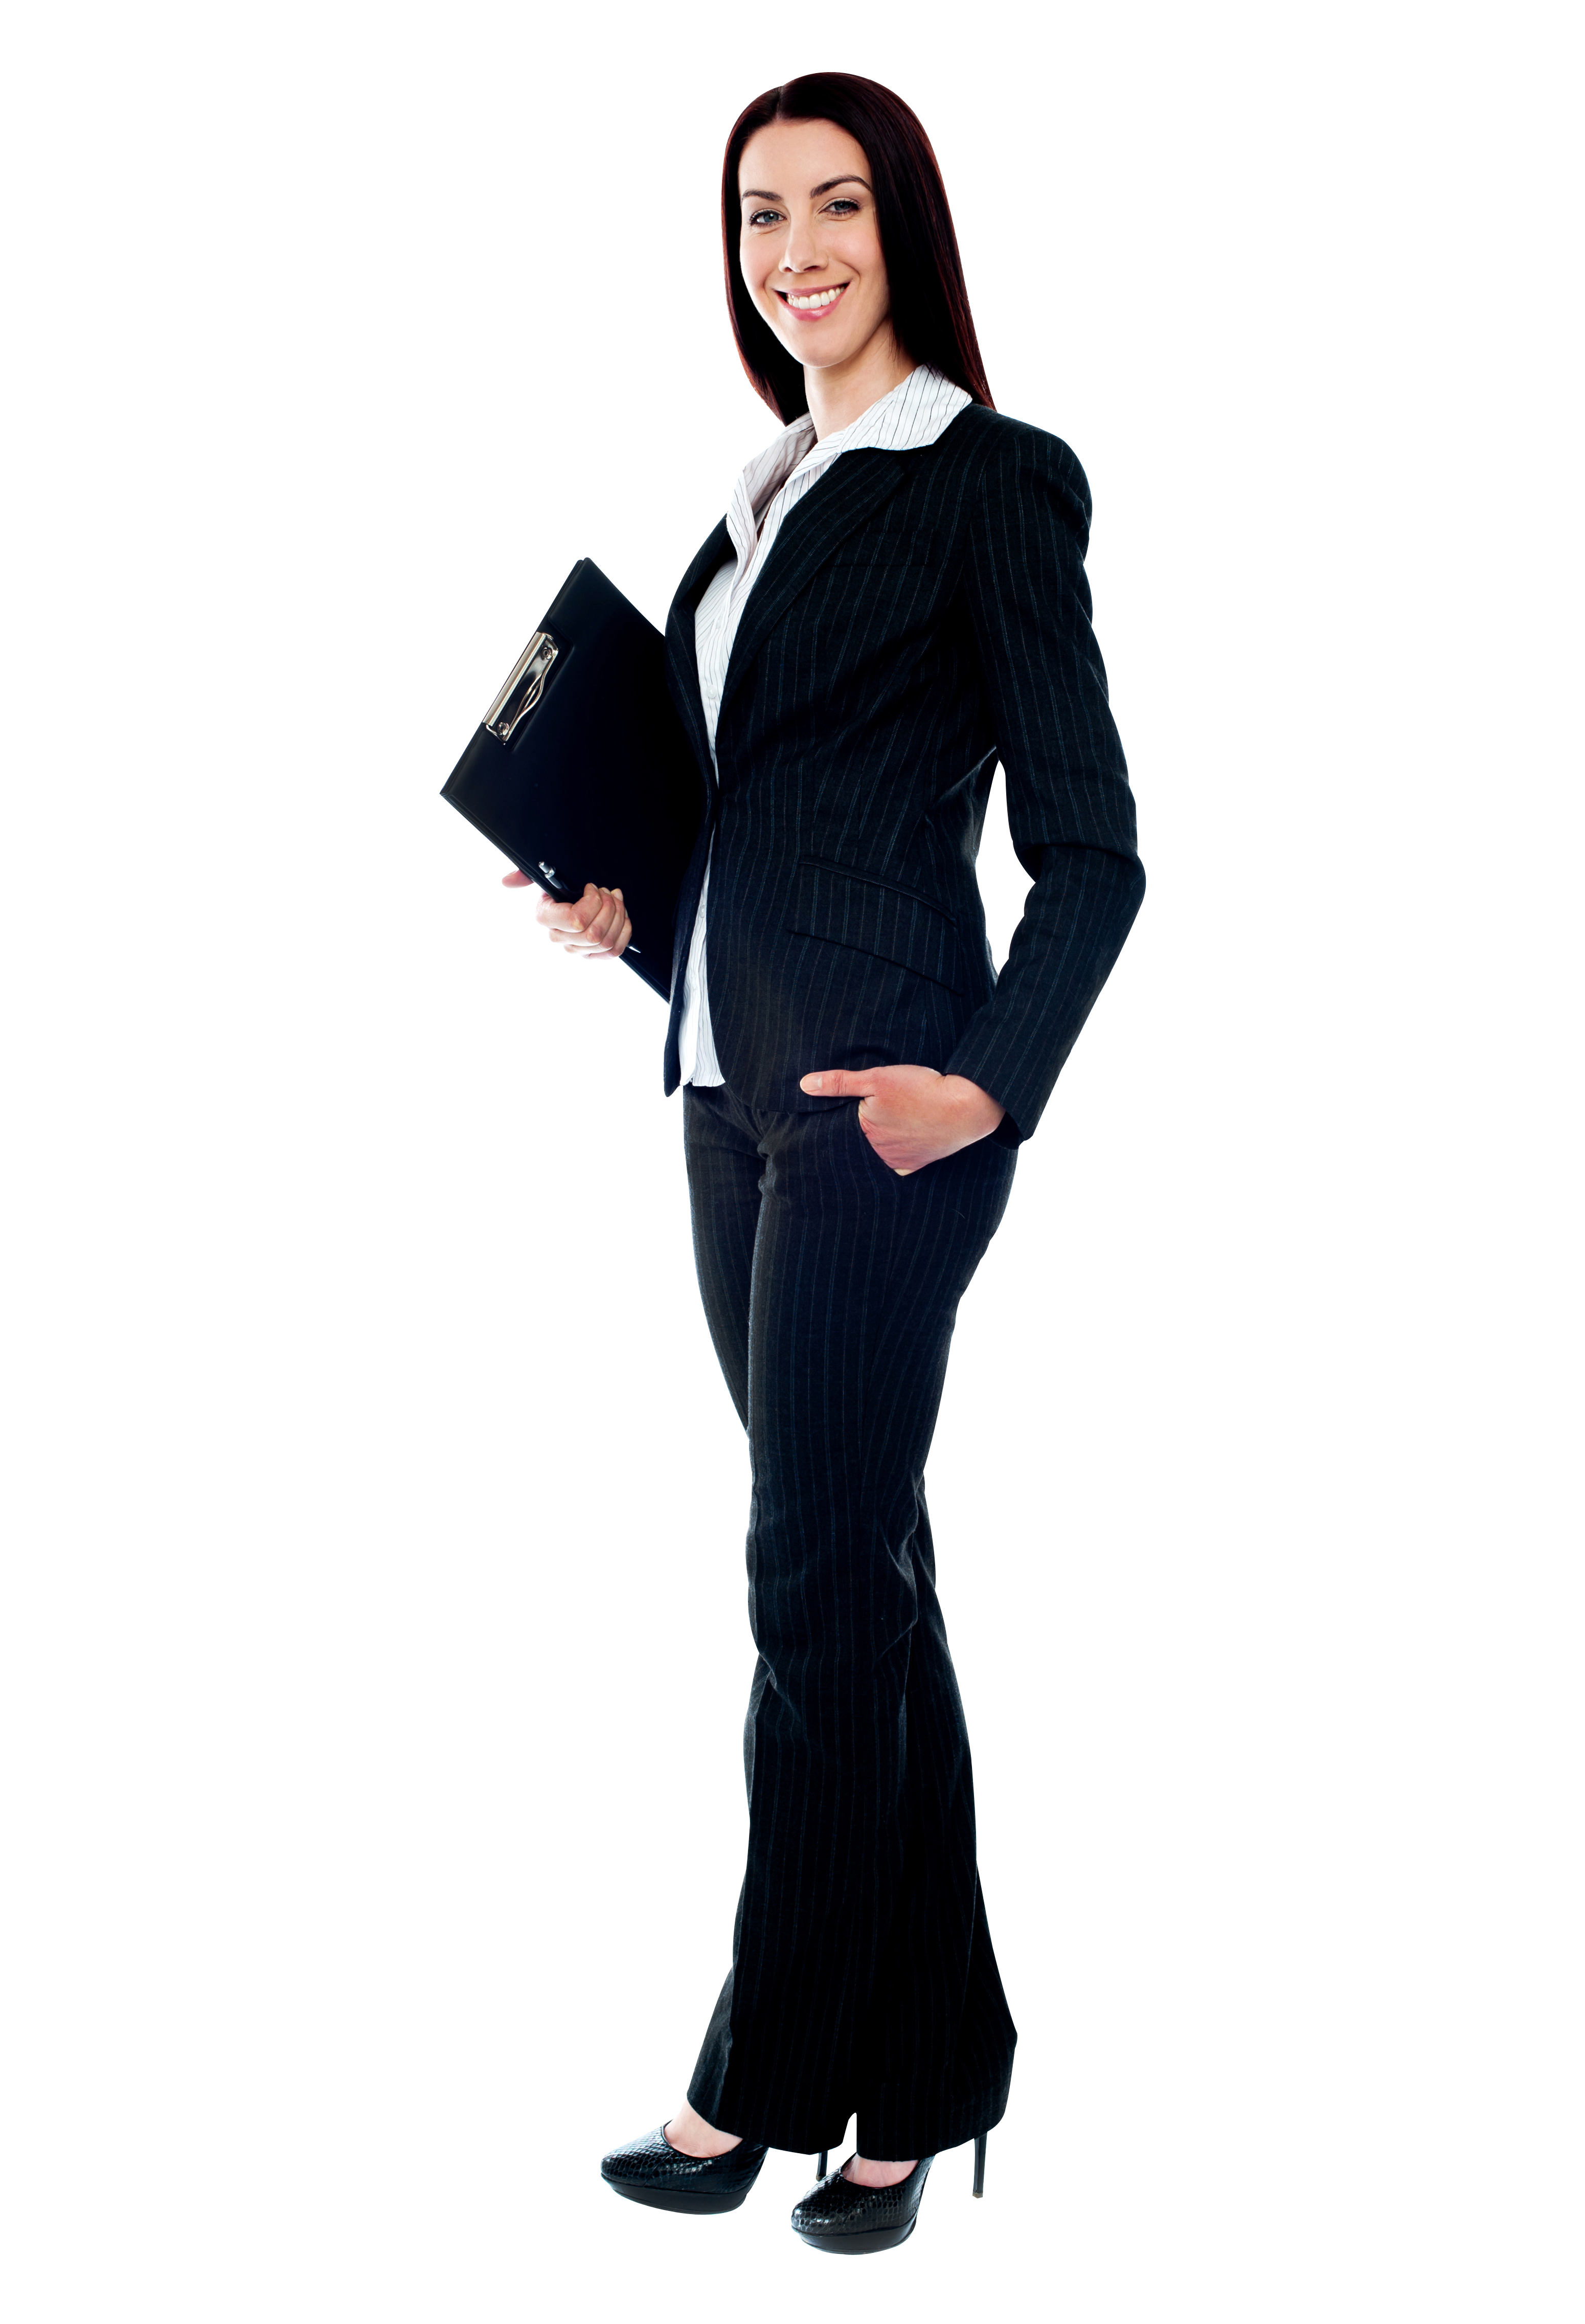 Women In Suit PNG Image.